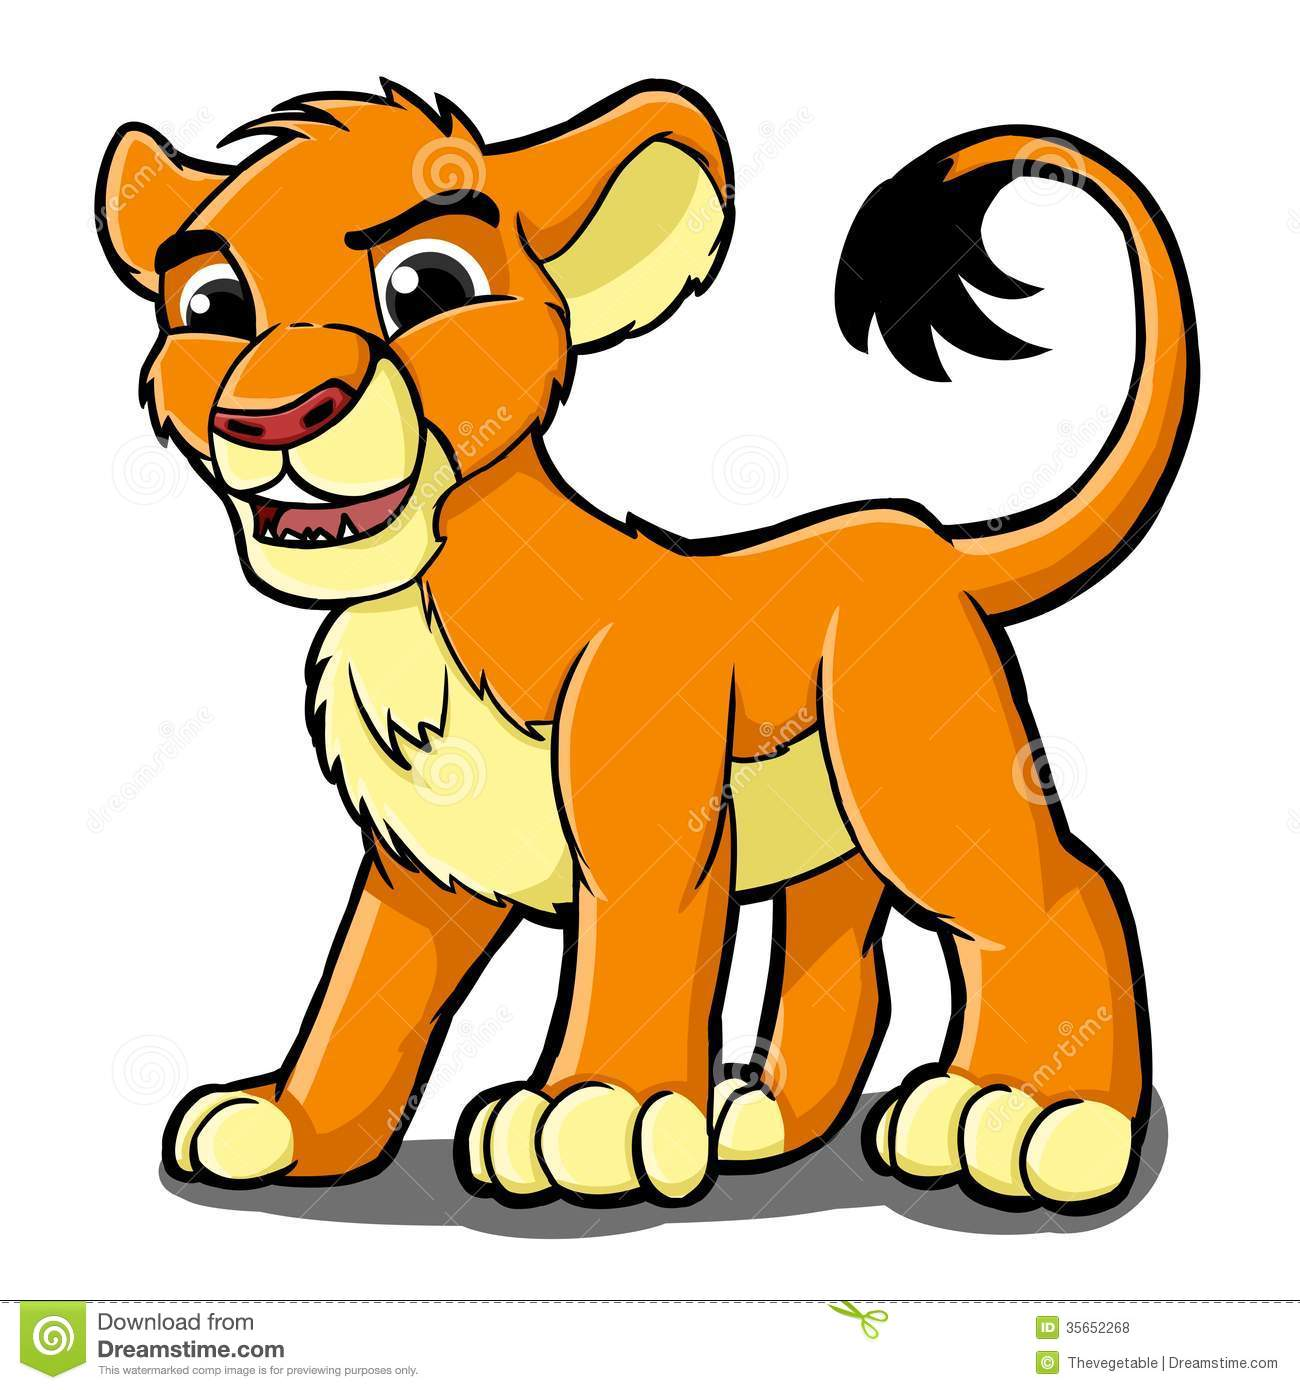 Lion images for kids